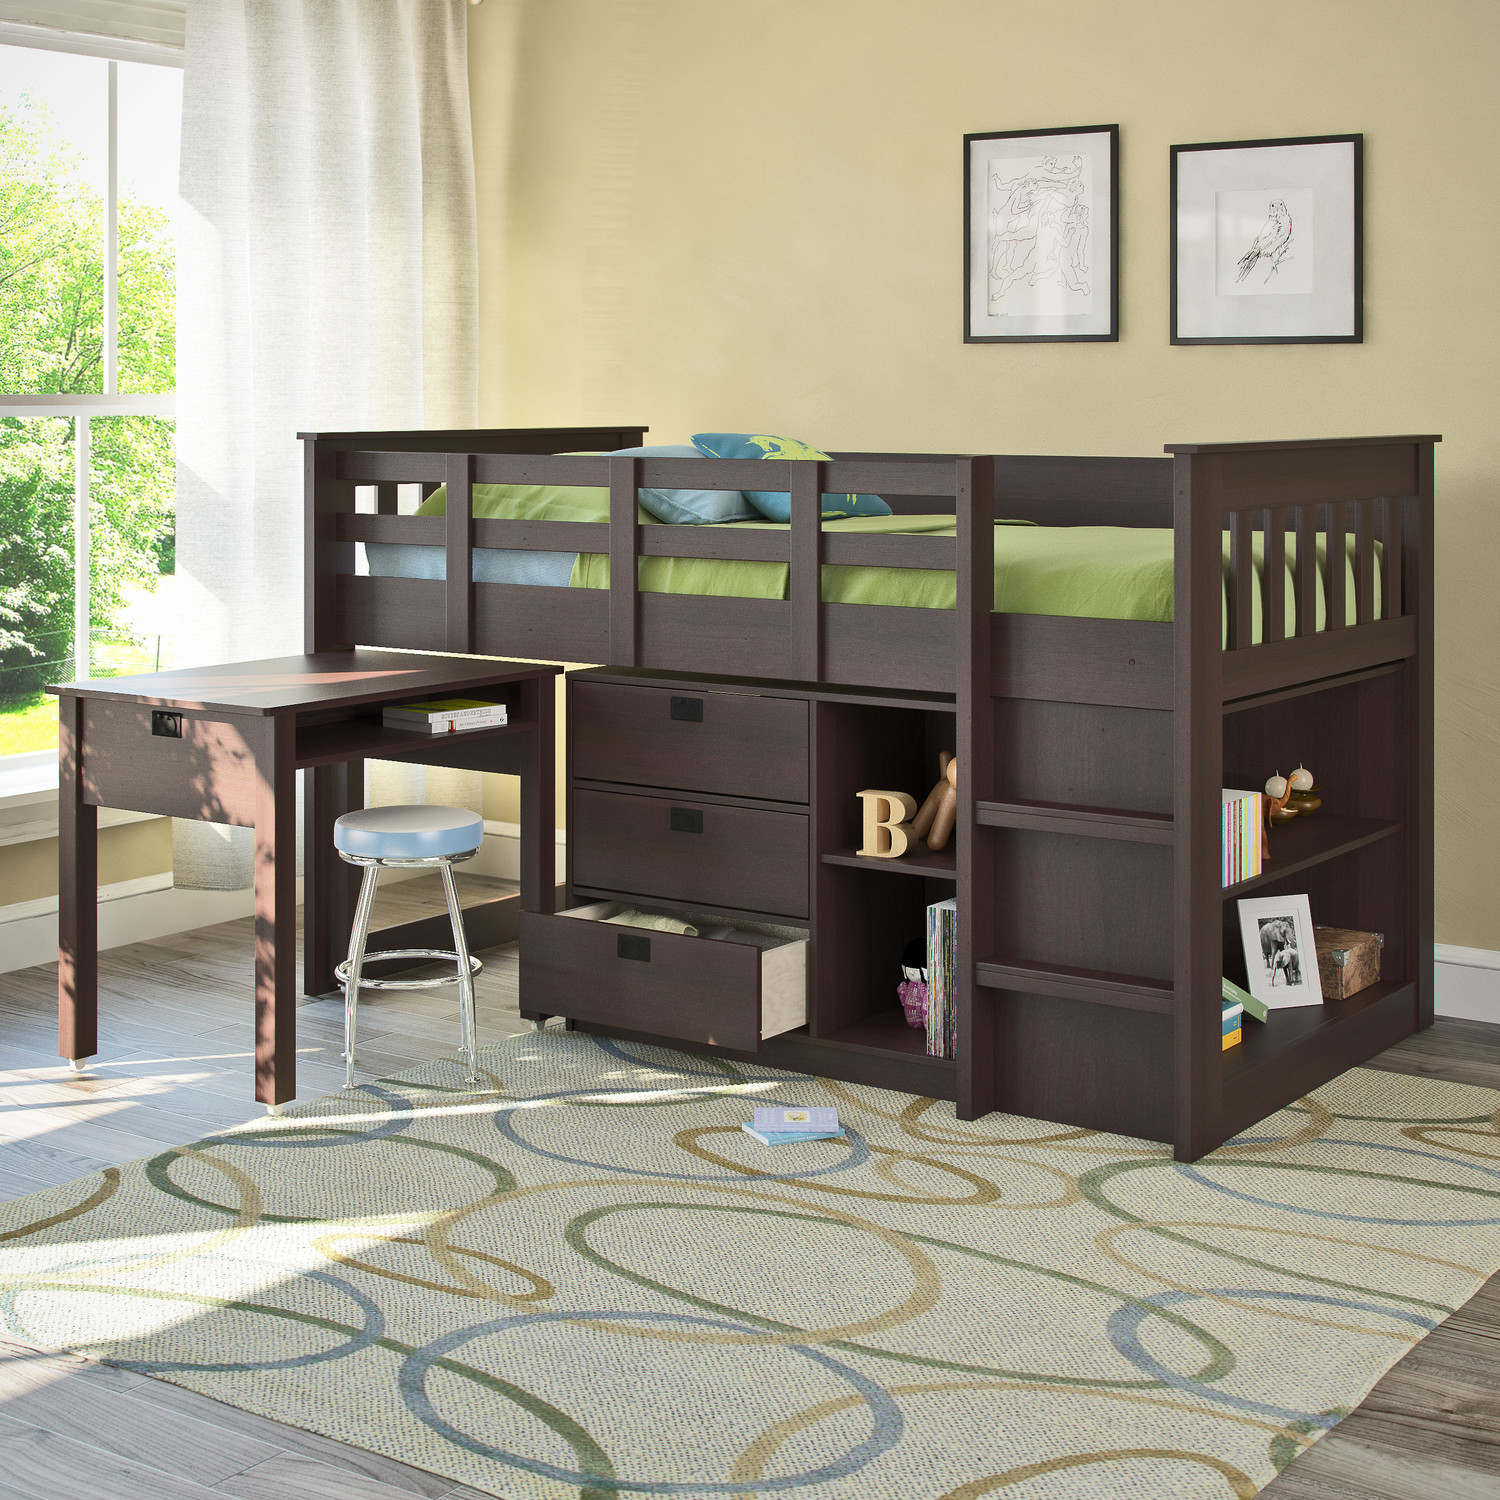 Bunk Beds for Small Rooms | Built in Bunk Beds for Small Rooms | Short Bunk Beds for Small Rooms